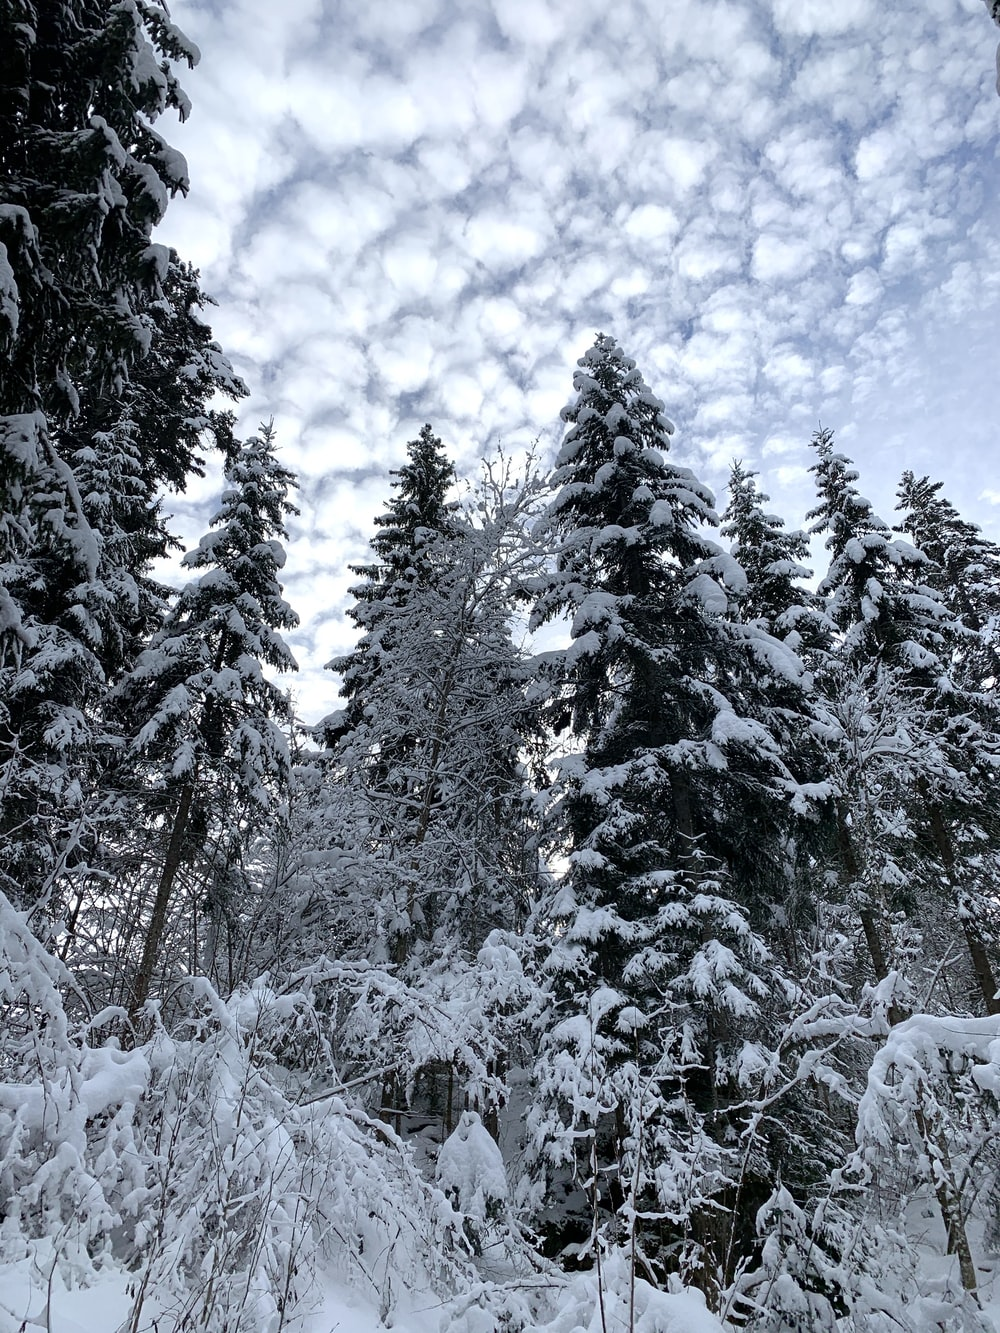 green pine trees covered with snow under blue sky and white clouds during daytime